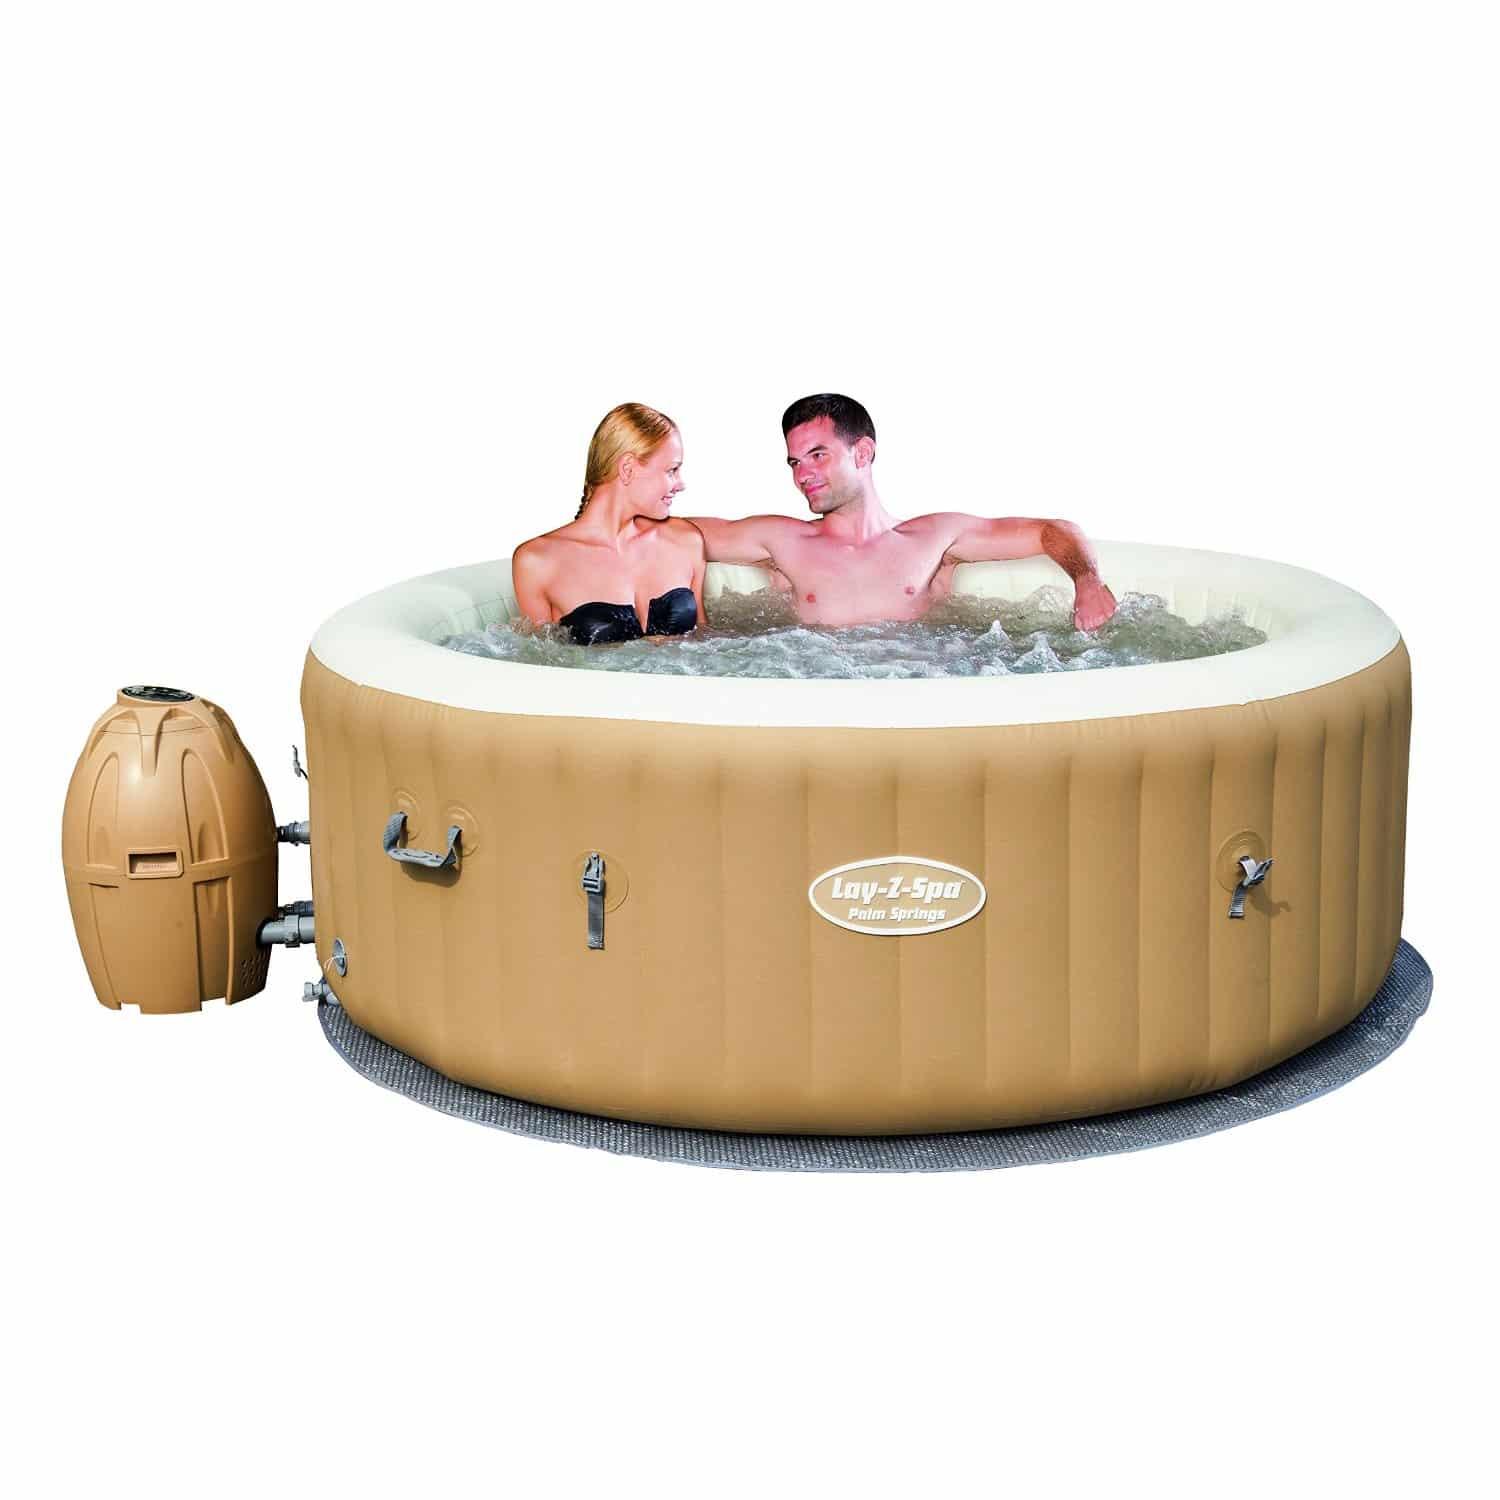 Lay-Z-Spa Palm Springs Air Jet Inflatable Hot Tub Review - Best ...